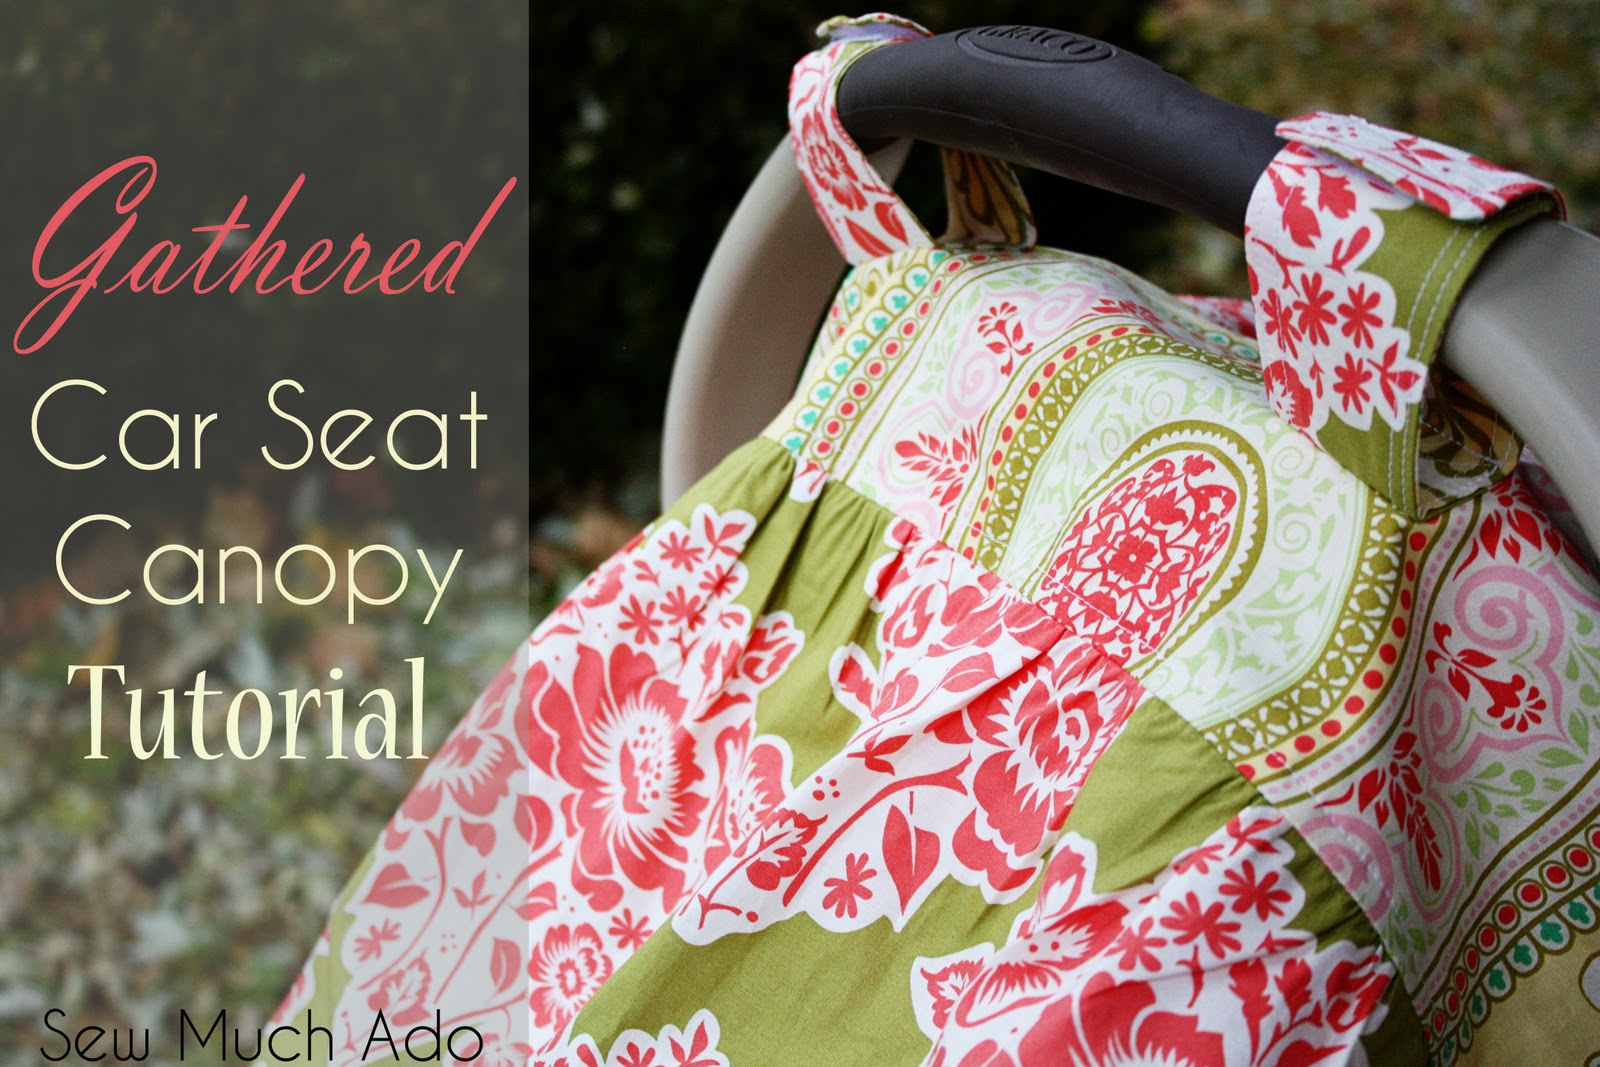 Car Seat Covers For Babies Patterns Gathered Car Seat Canopy Tutorial Sew Much Ado